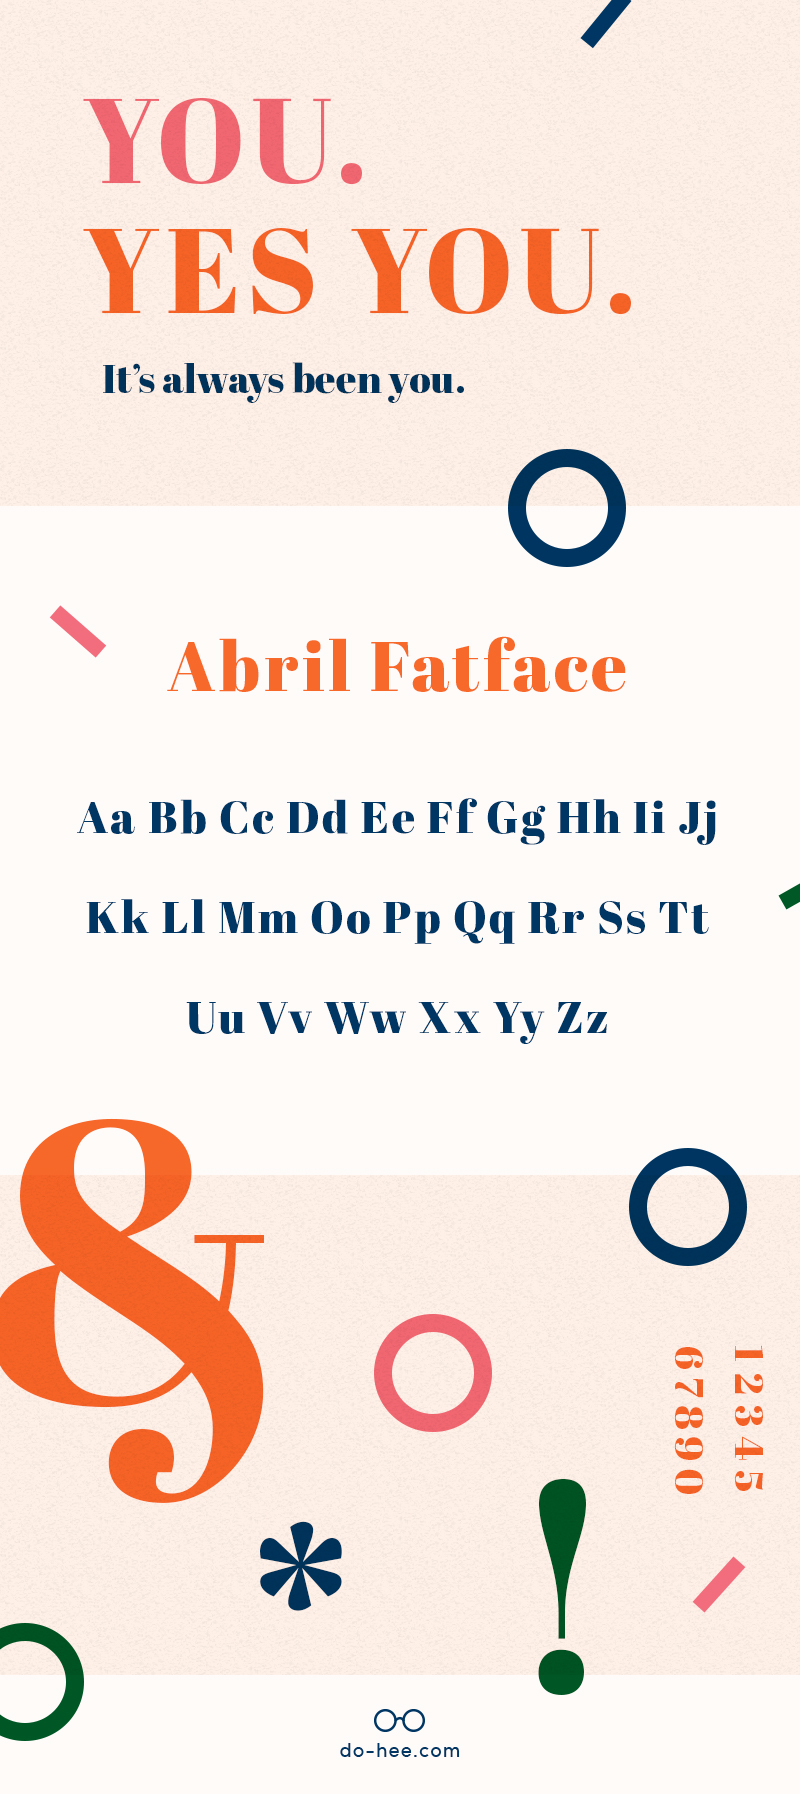 Abril Fatface - Best Free Font to Use on Your Website